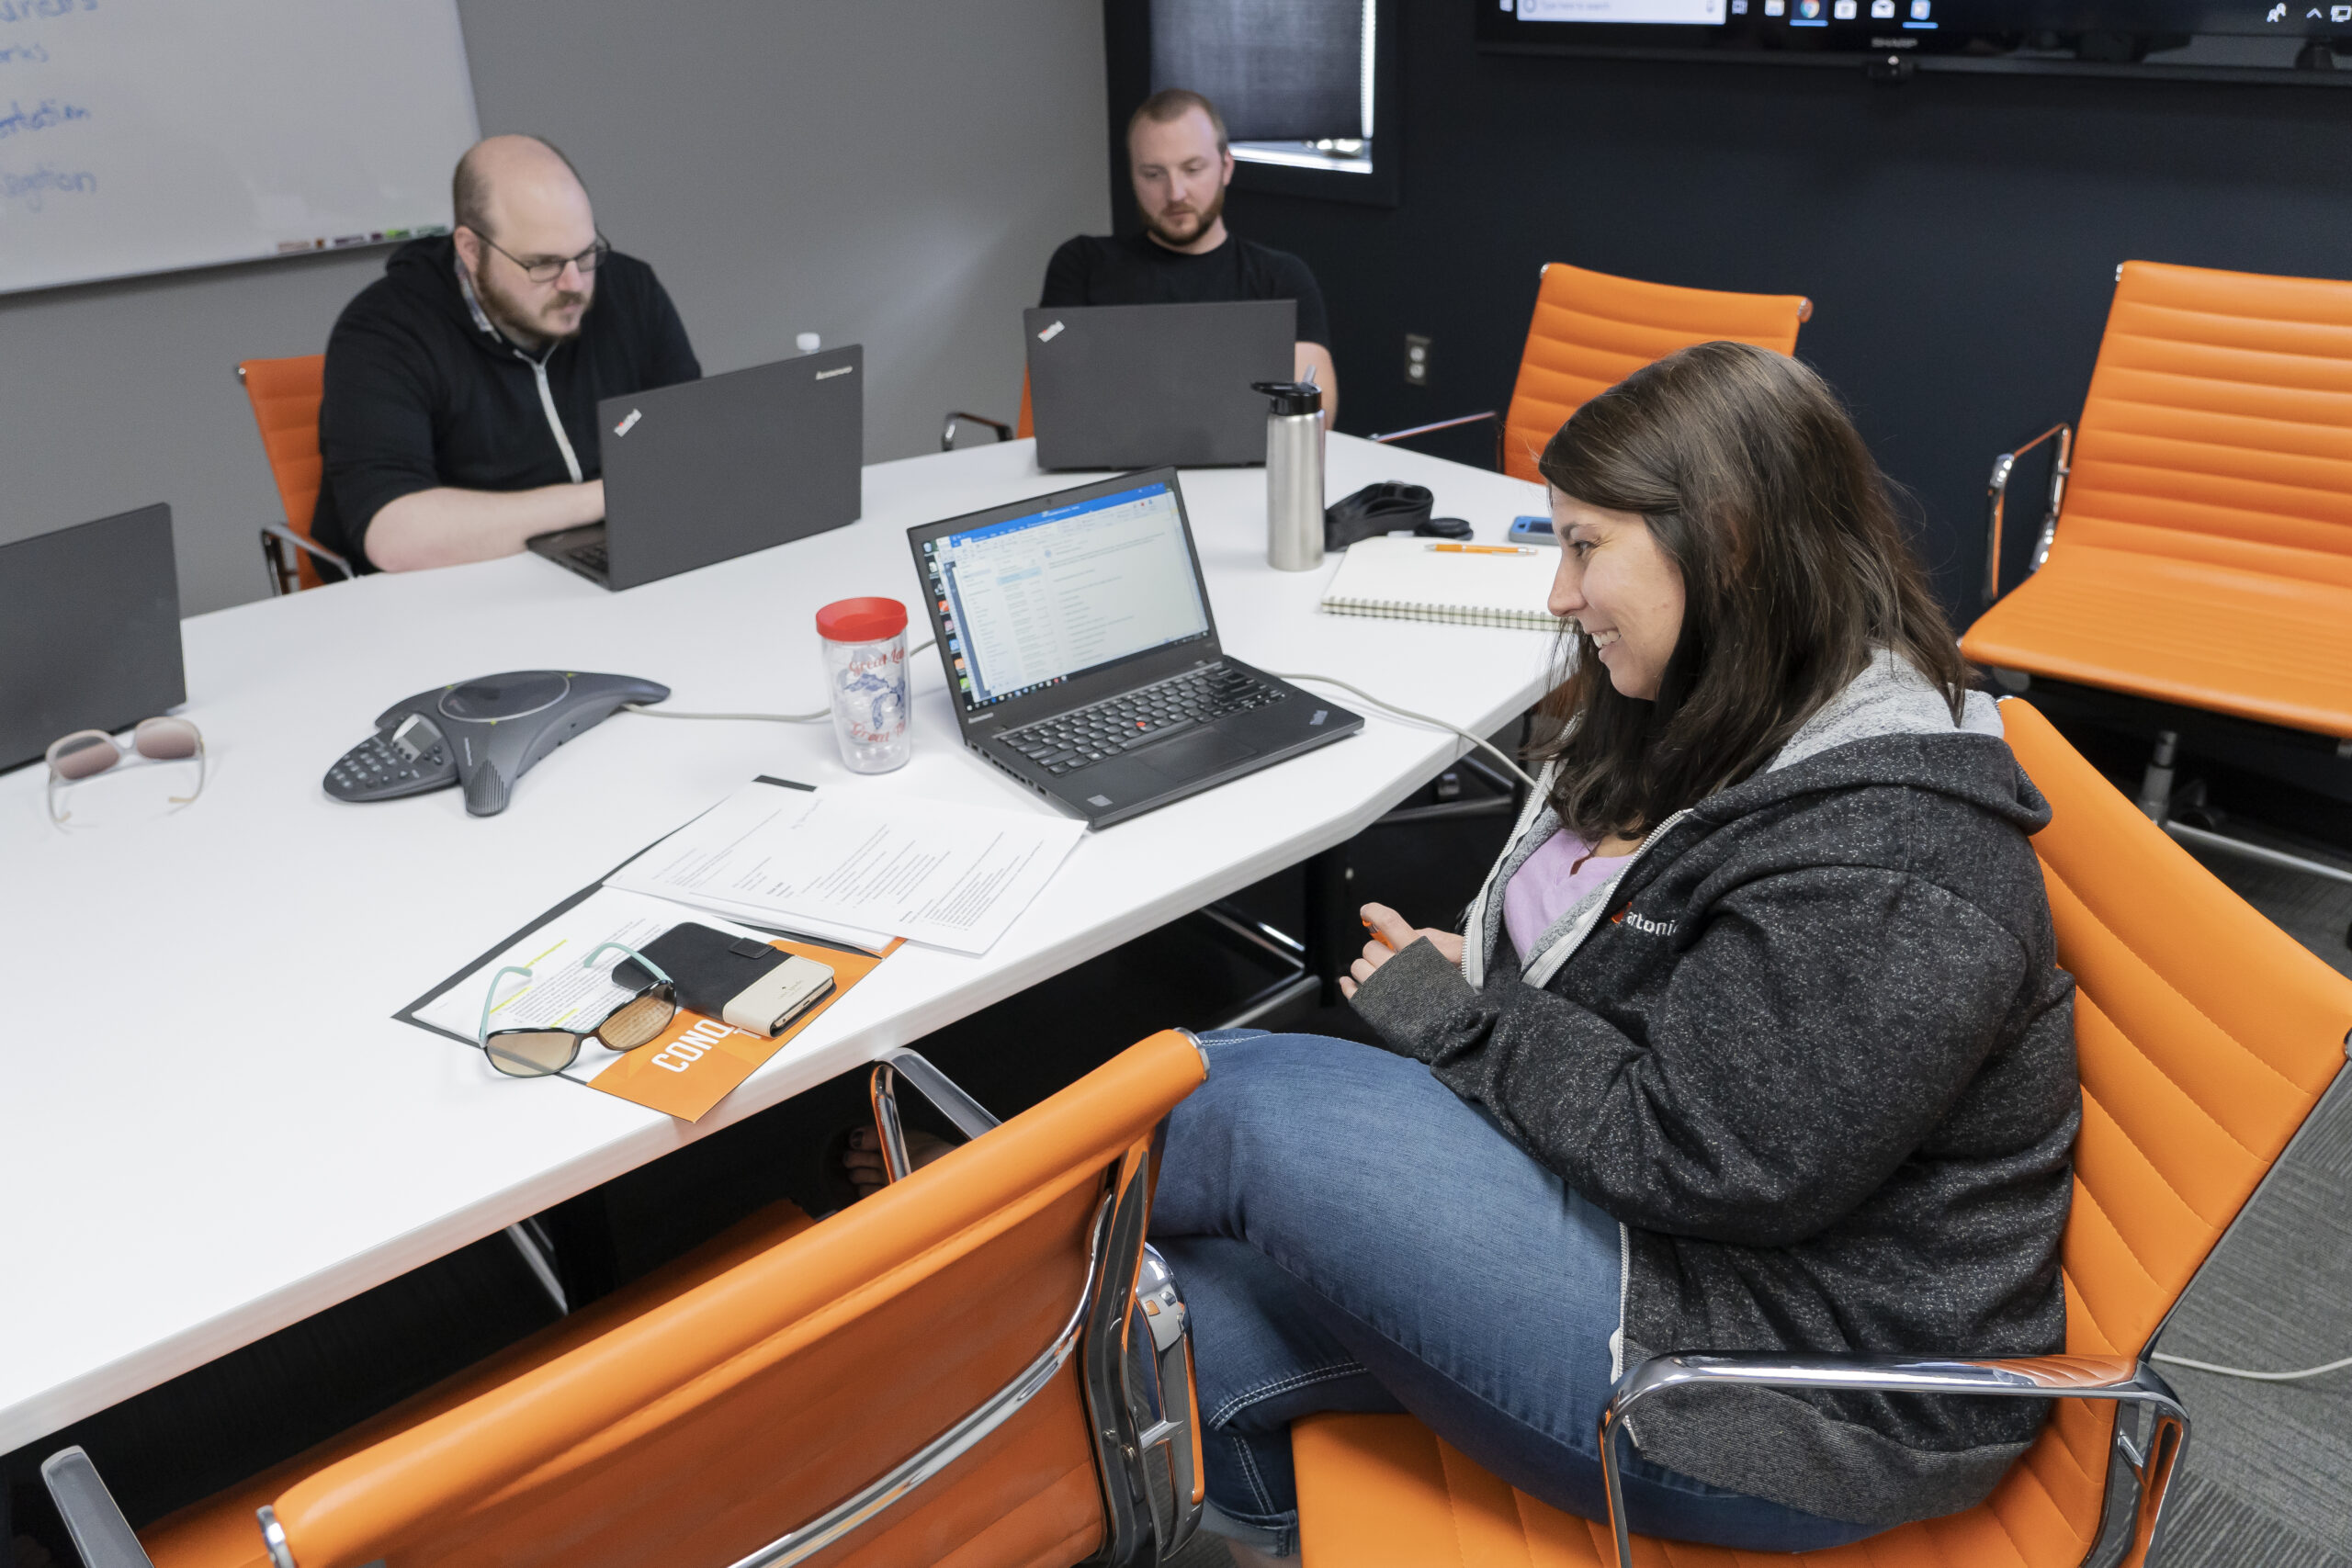 Angela, Andy, and Sean in a meeting at Artonic